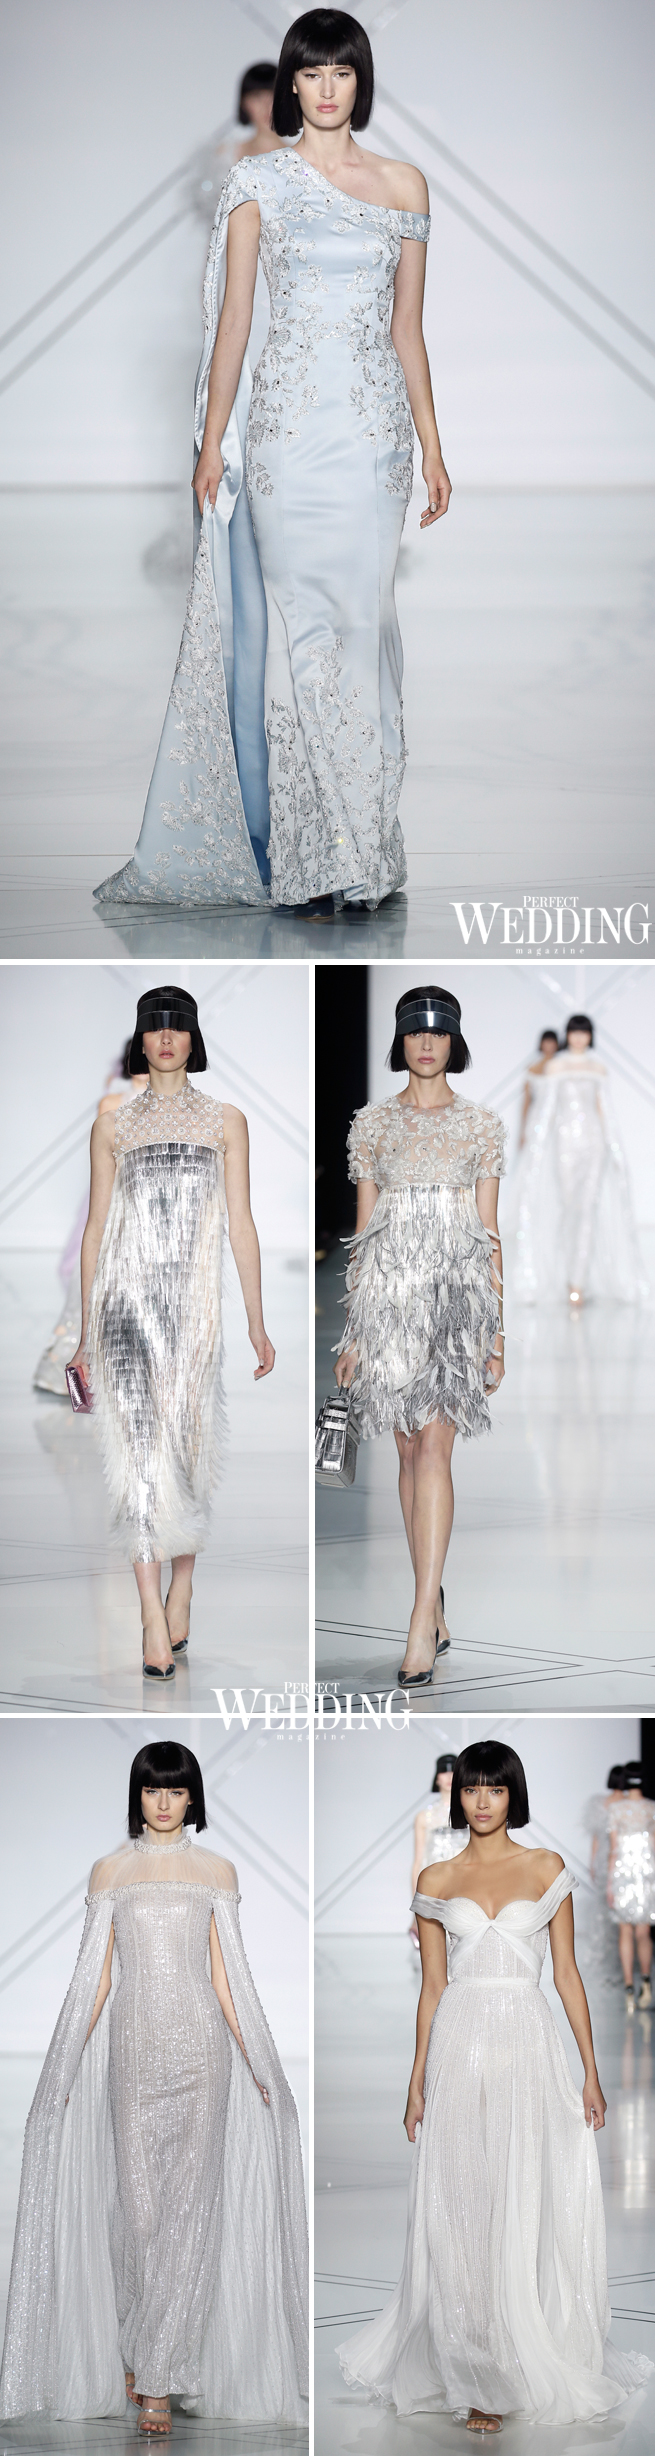 RalphandRusso, Ralph&Russo, Haute Couture, Paris Fashion week, Spring Summer 2017 Haute Couture, Perfect Wedding Magazine, Perfect Wedding Blog, Couture Bride